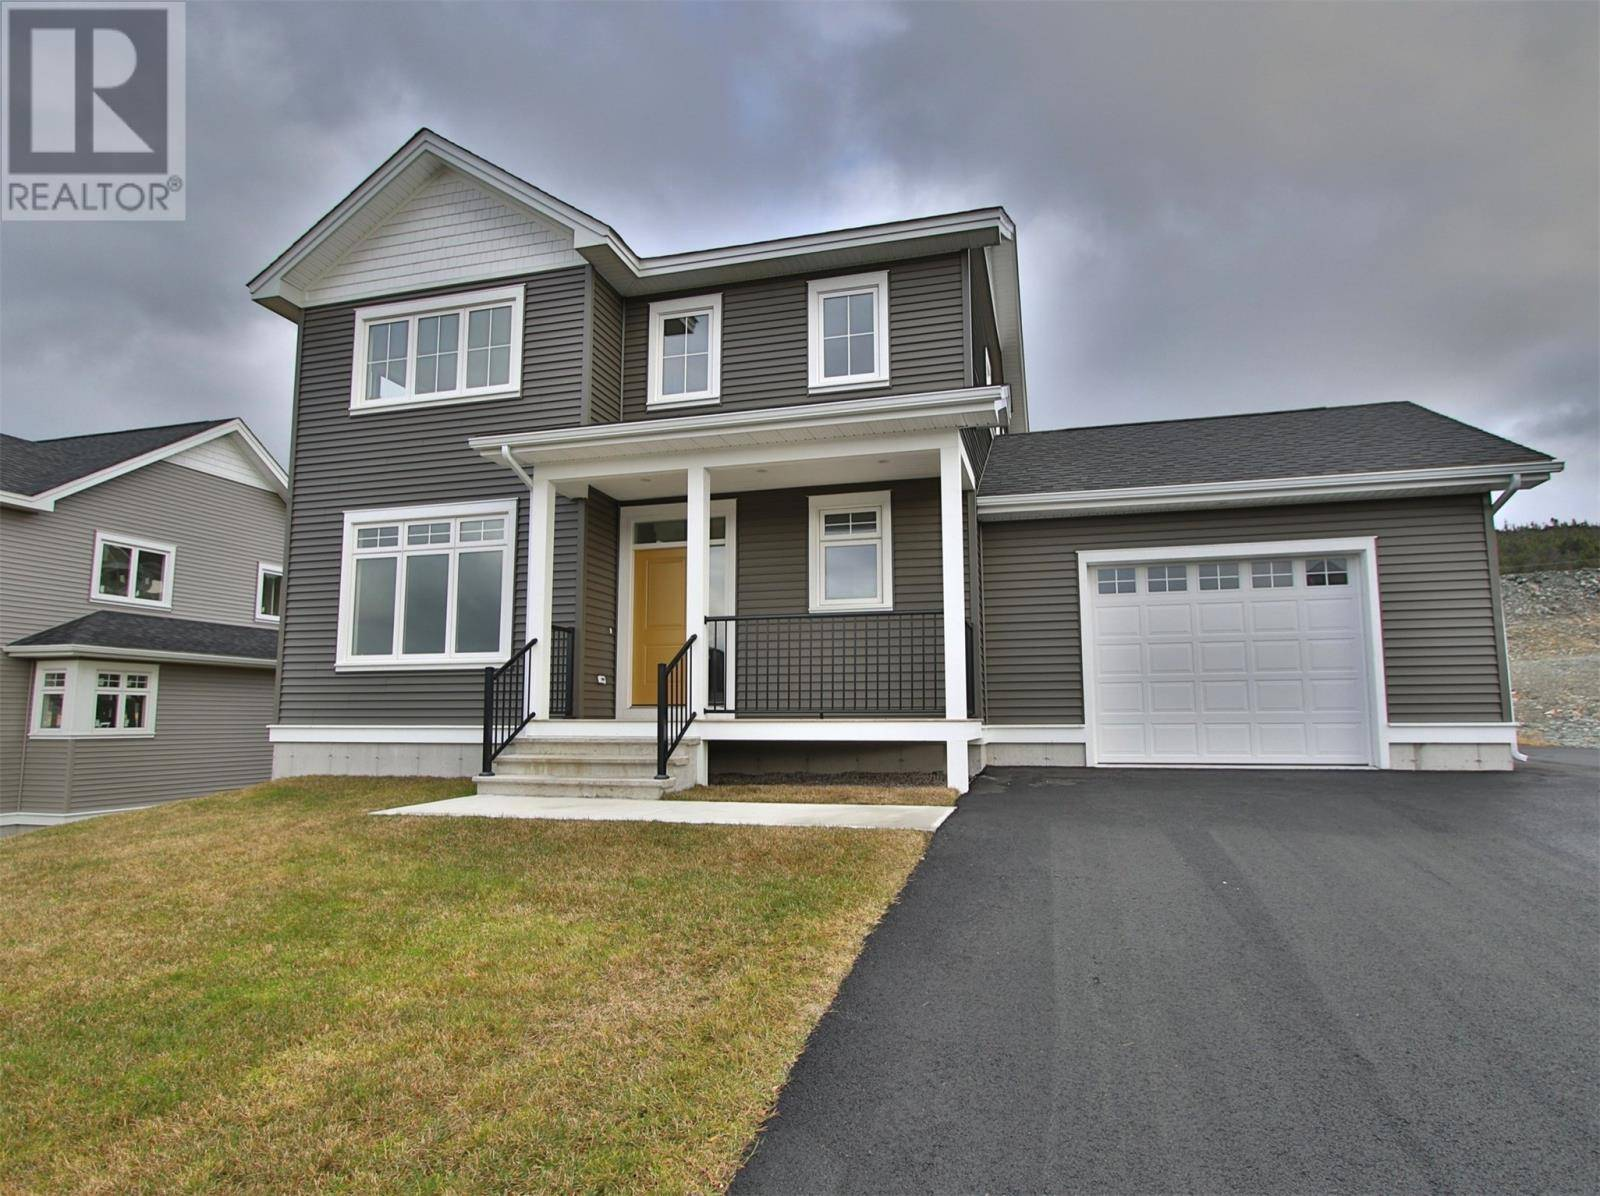 House for sale at 5 Midnight Cove St. Philips Newfoundland - MLS: 1212159